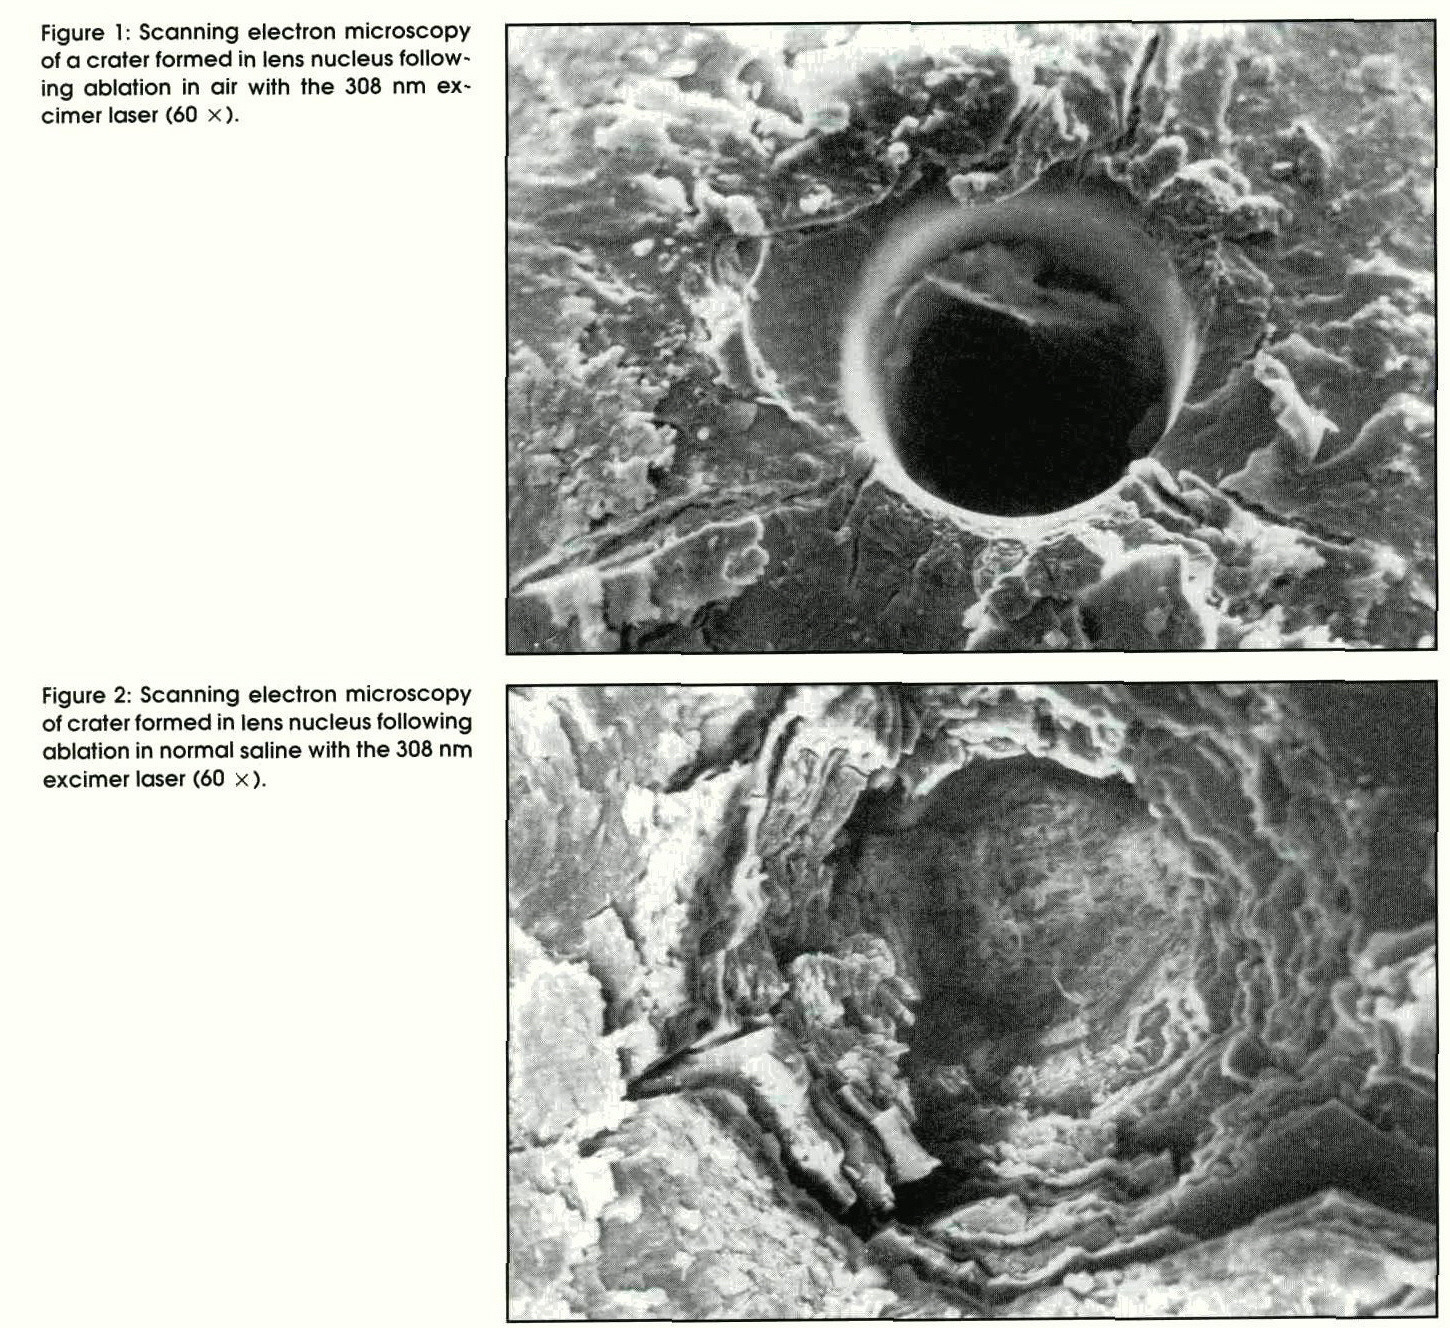 Figure 1: Scanning electron microscopy of a crater formed in lens nucleus following ablation in air with the 308 nm excimer laser (60 ×).Figure 2: Scanning electron microscopy of crater formed in lens nucleus following ablation in normal saline with the 308 nm excimer laser (60 ×).